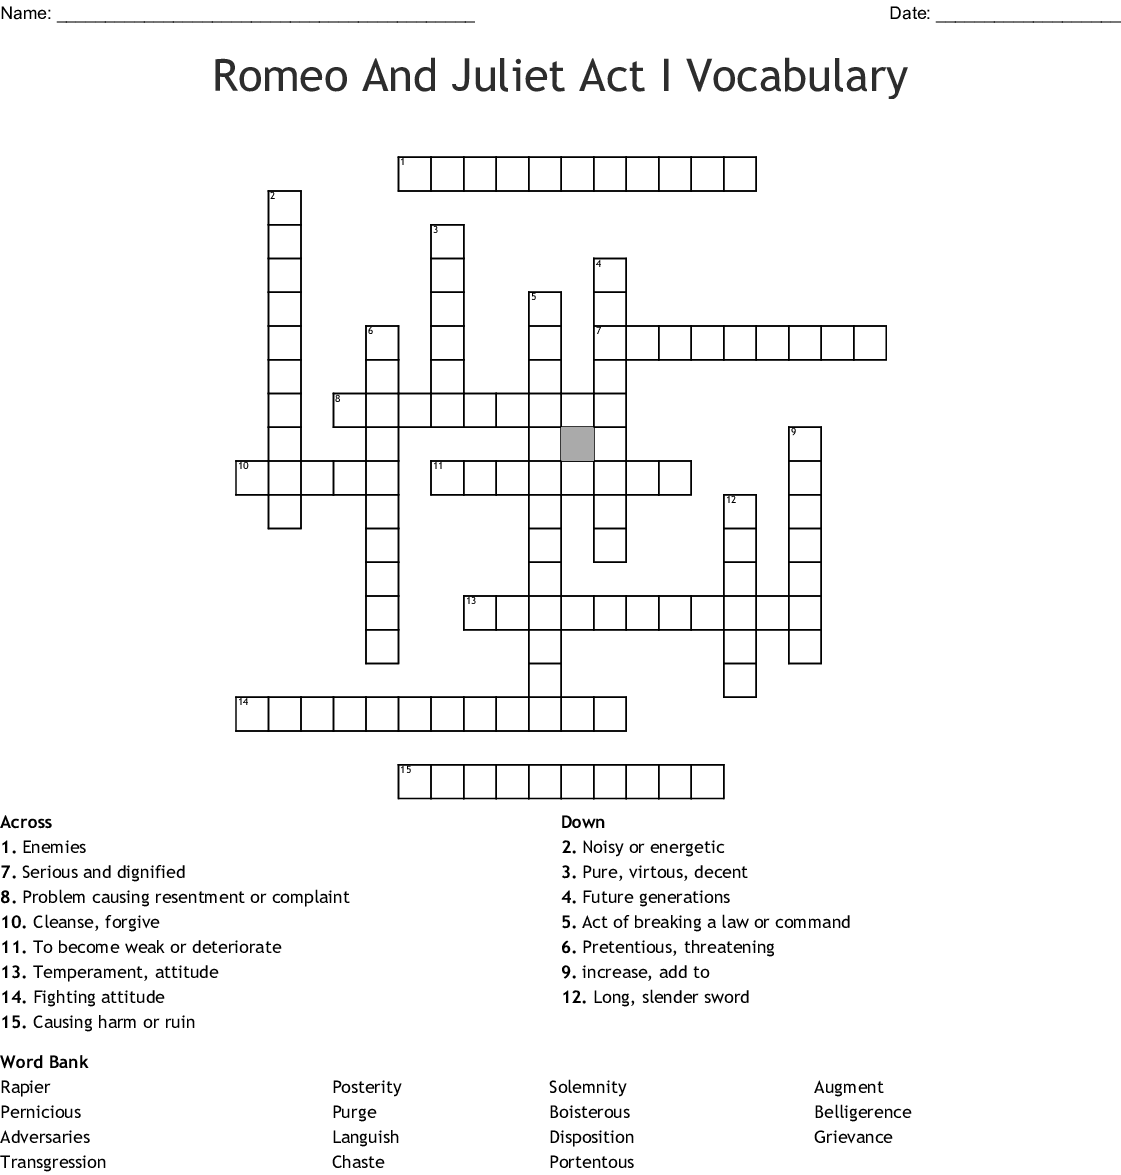 Romeo And Juliet Act I Vocabulary Crossword - WordMint